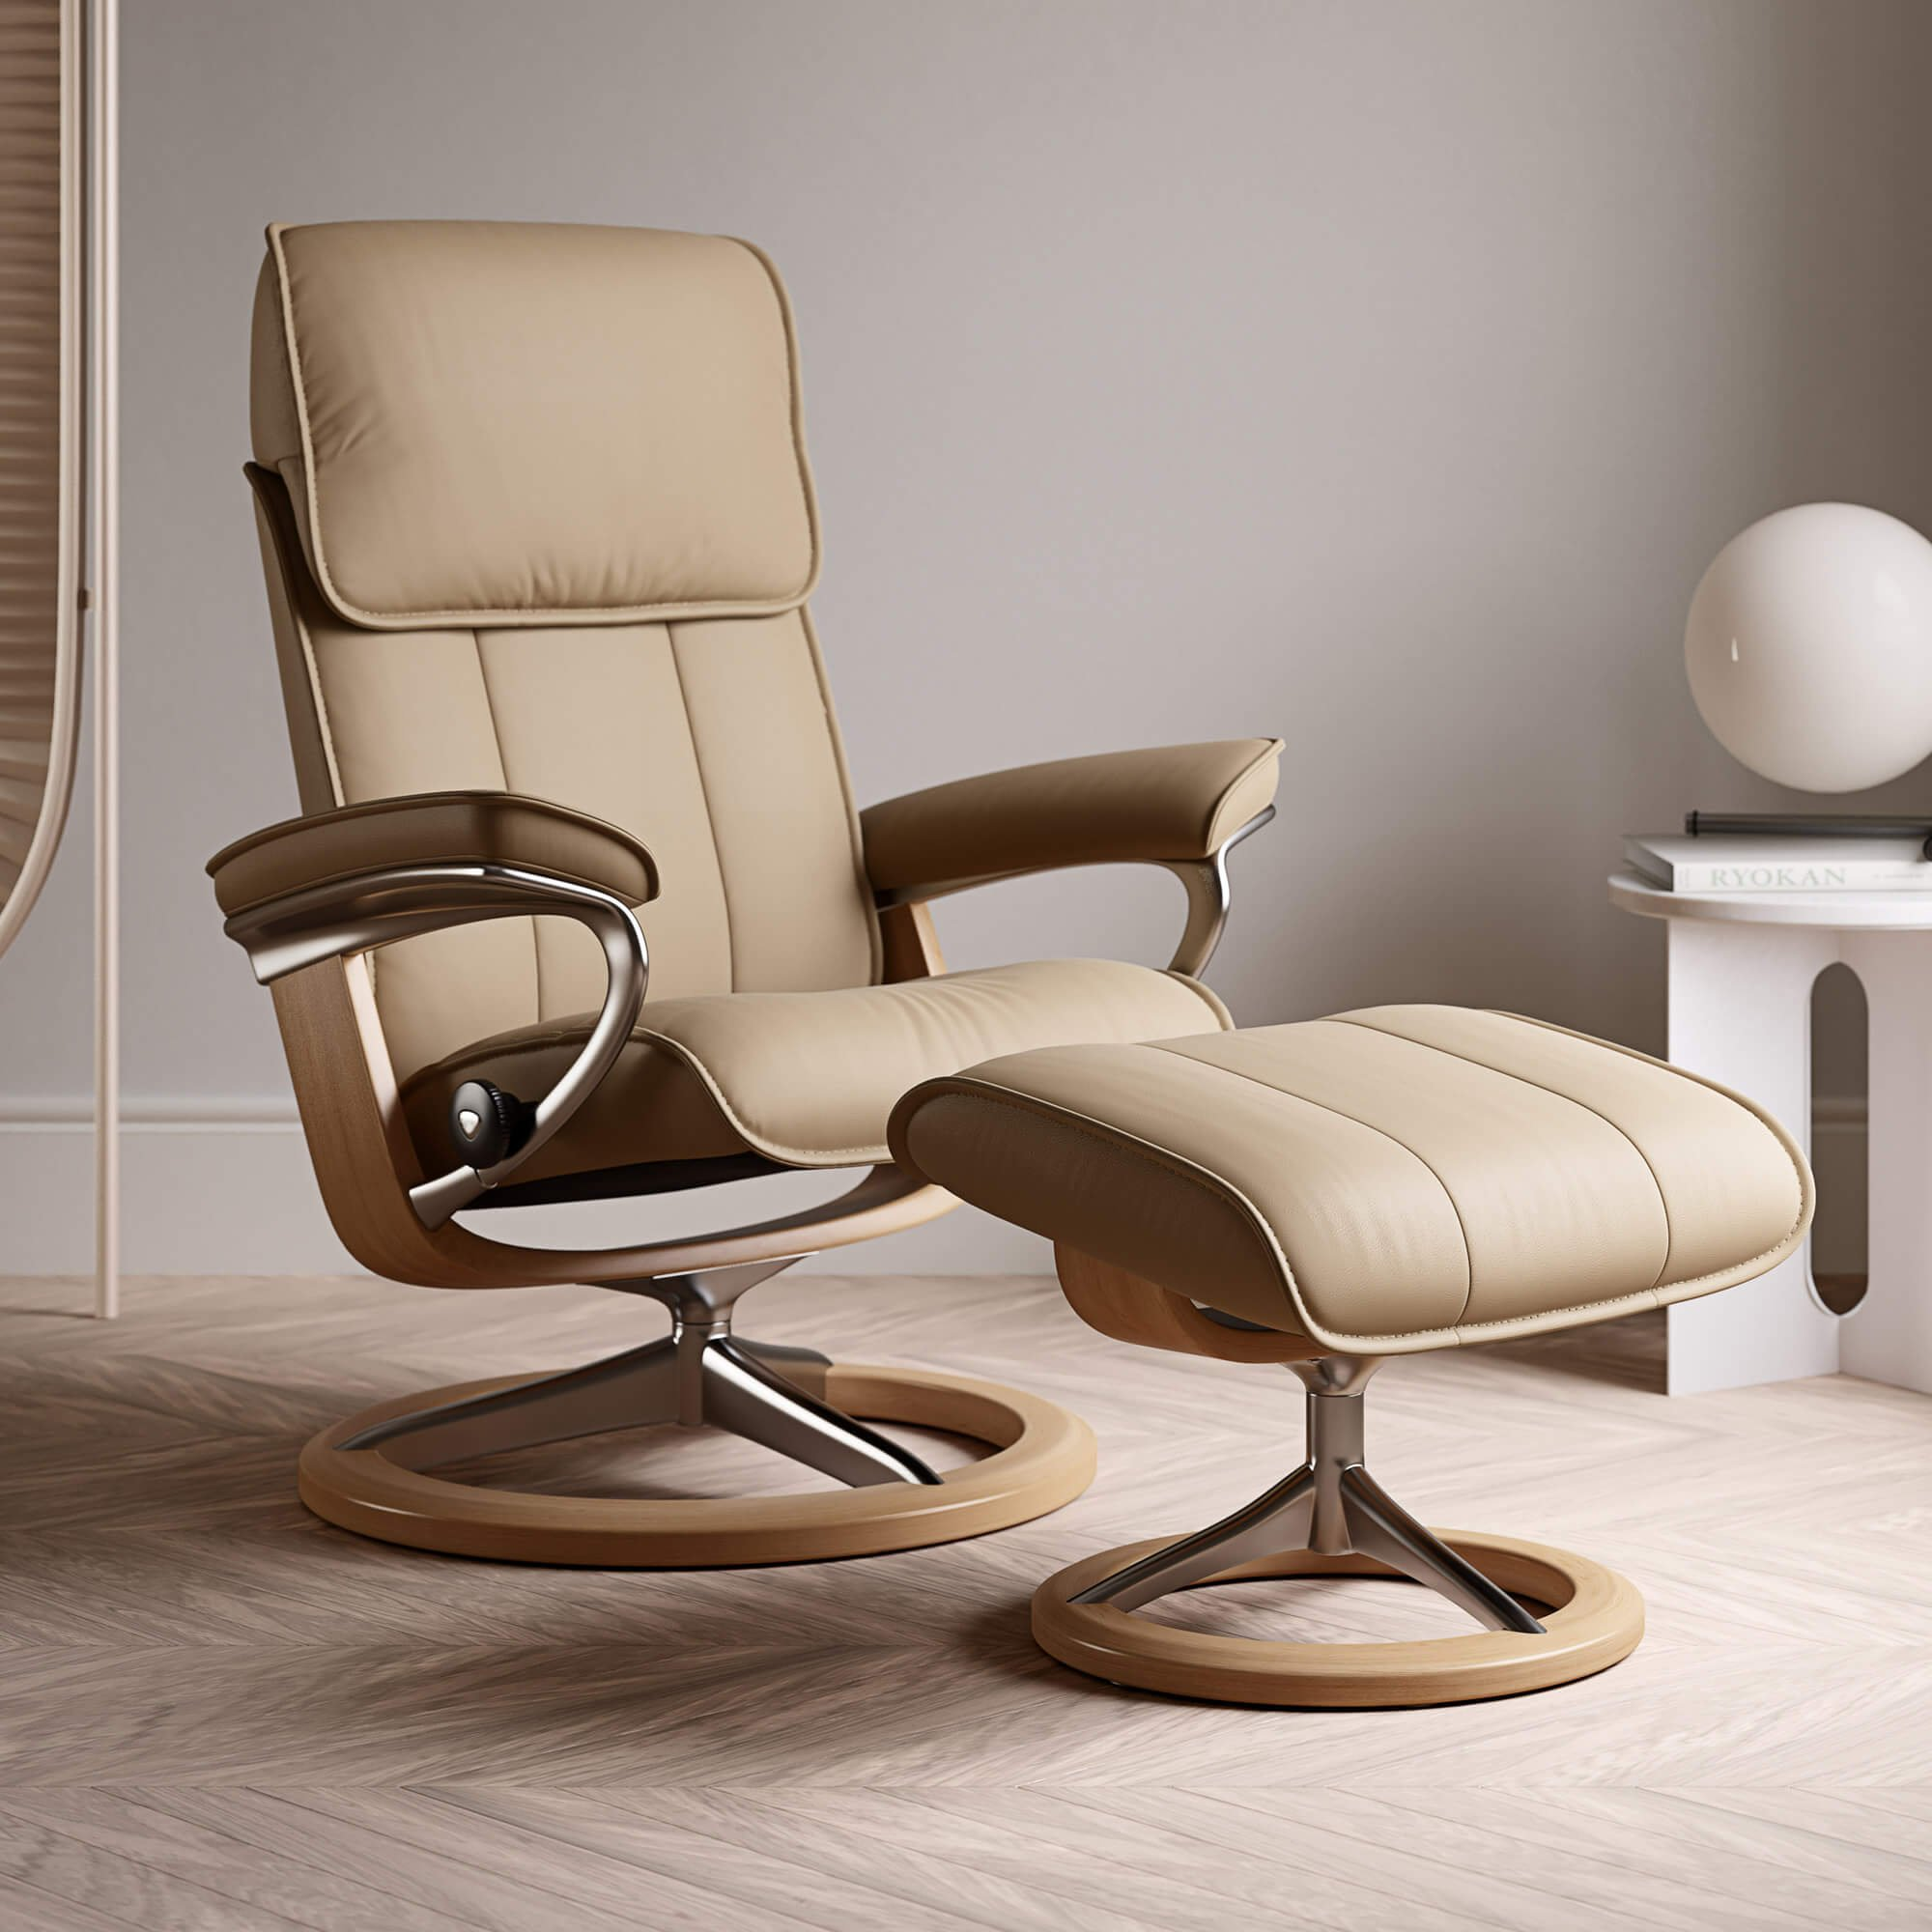 Stressless Admiral Medium Recliner Chair & Stool With Signature Base In Paloma Sand & Oak